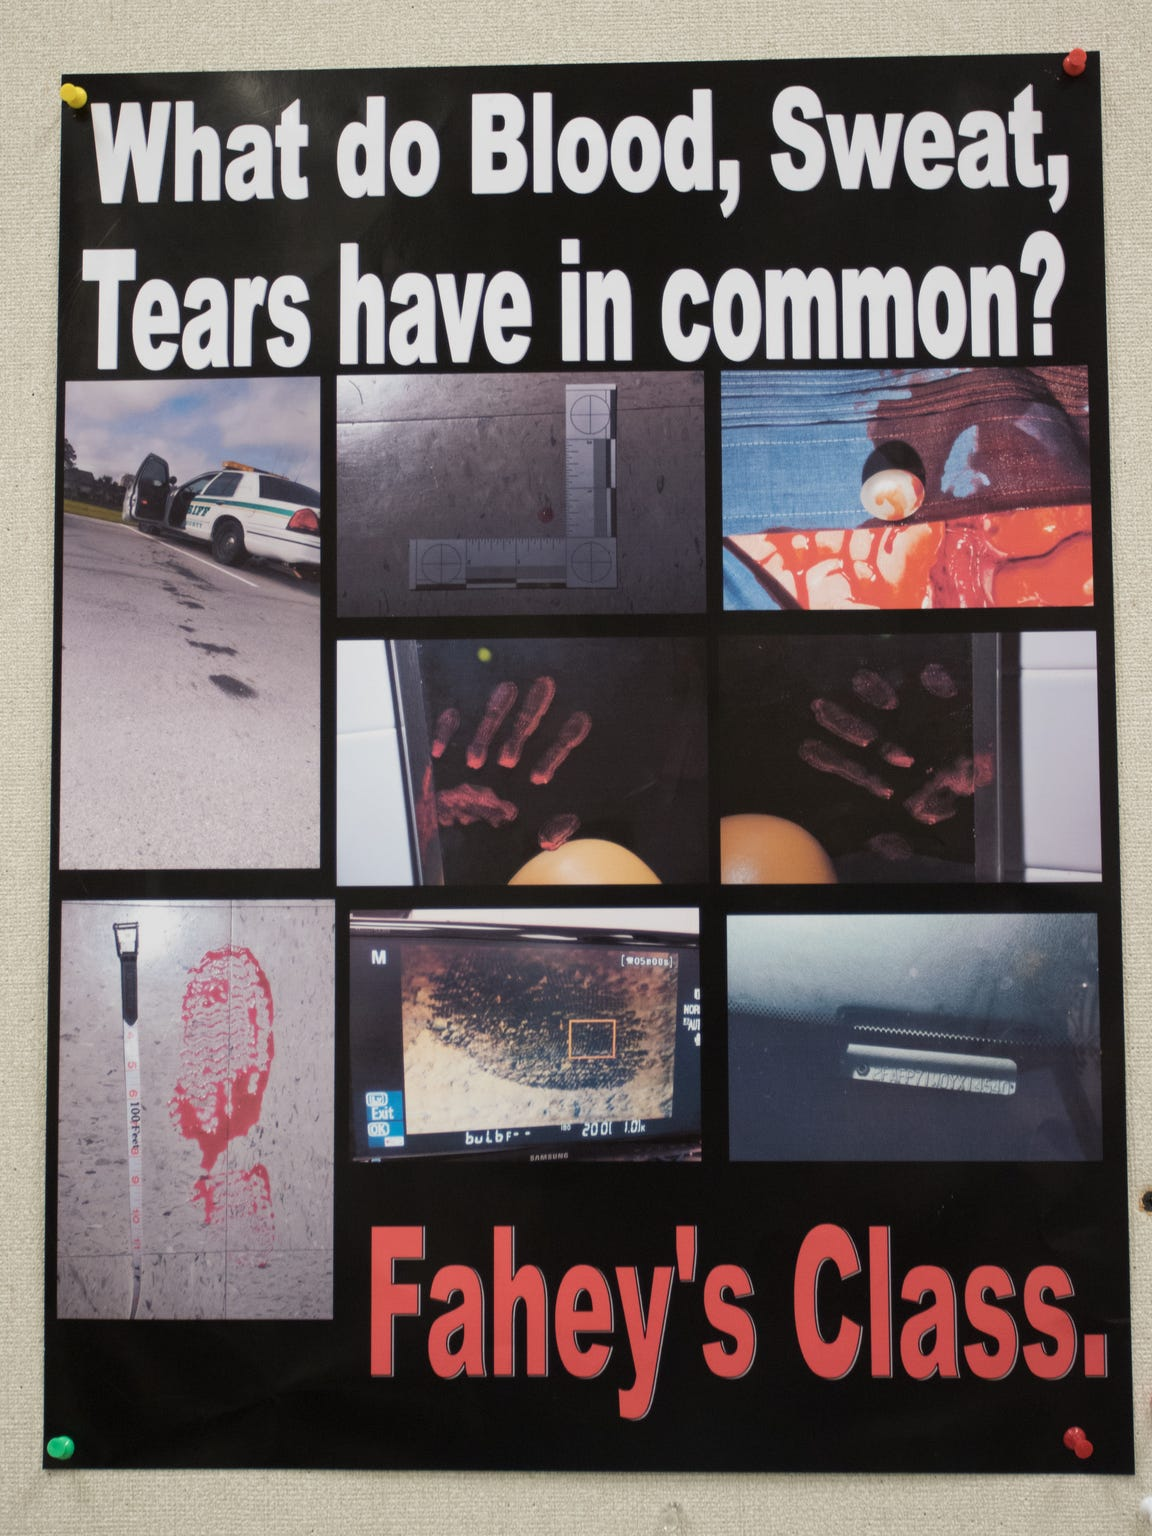 This poster welcomes students to Professor Dennis Fahey's